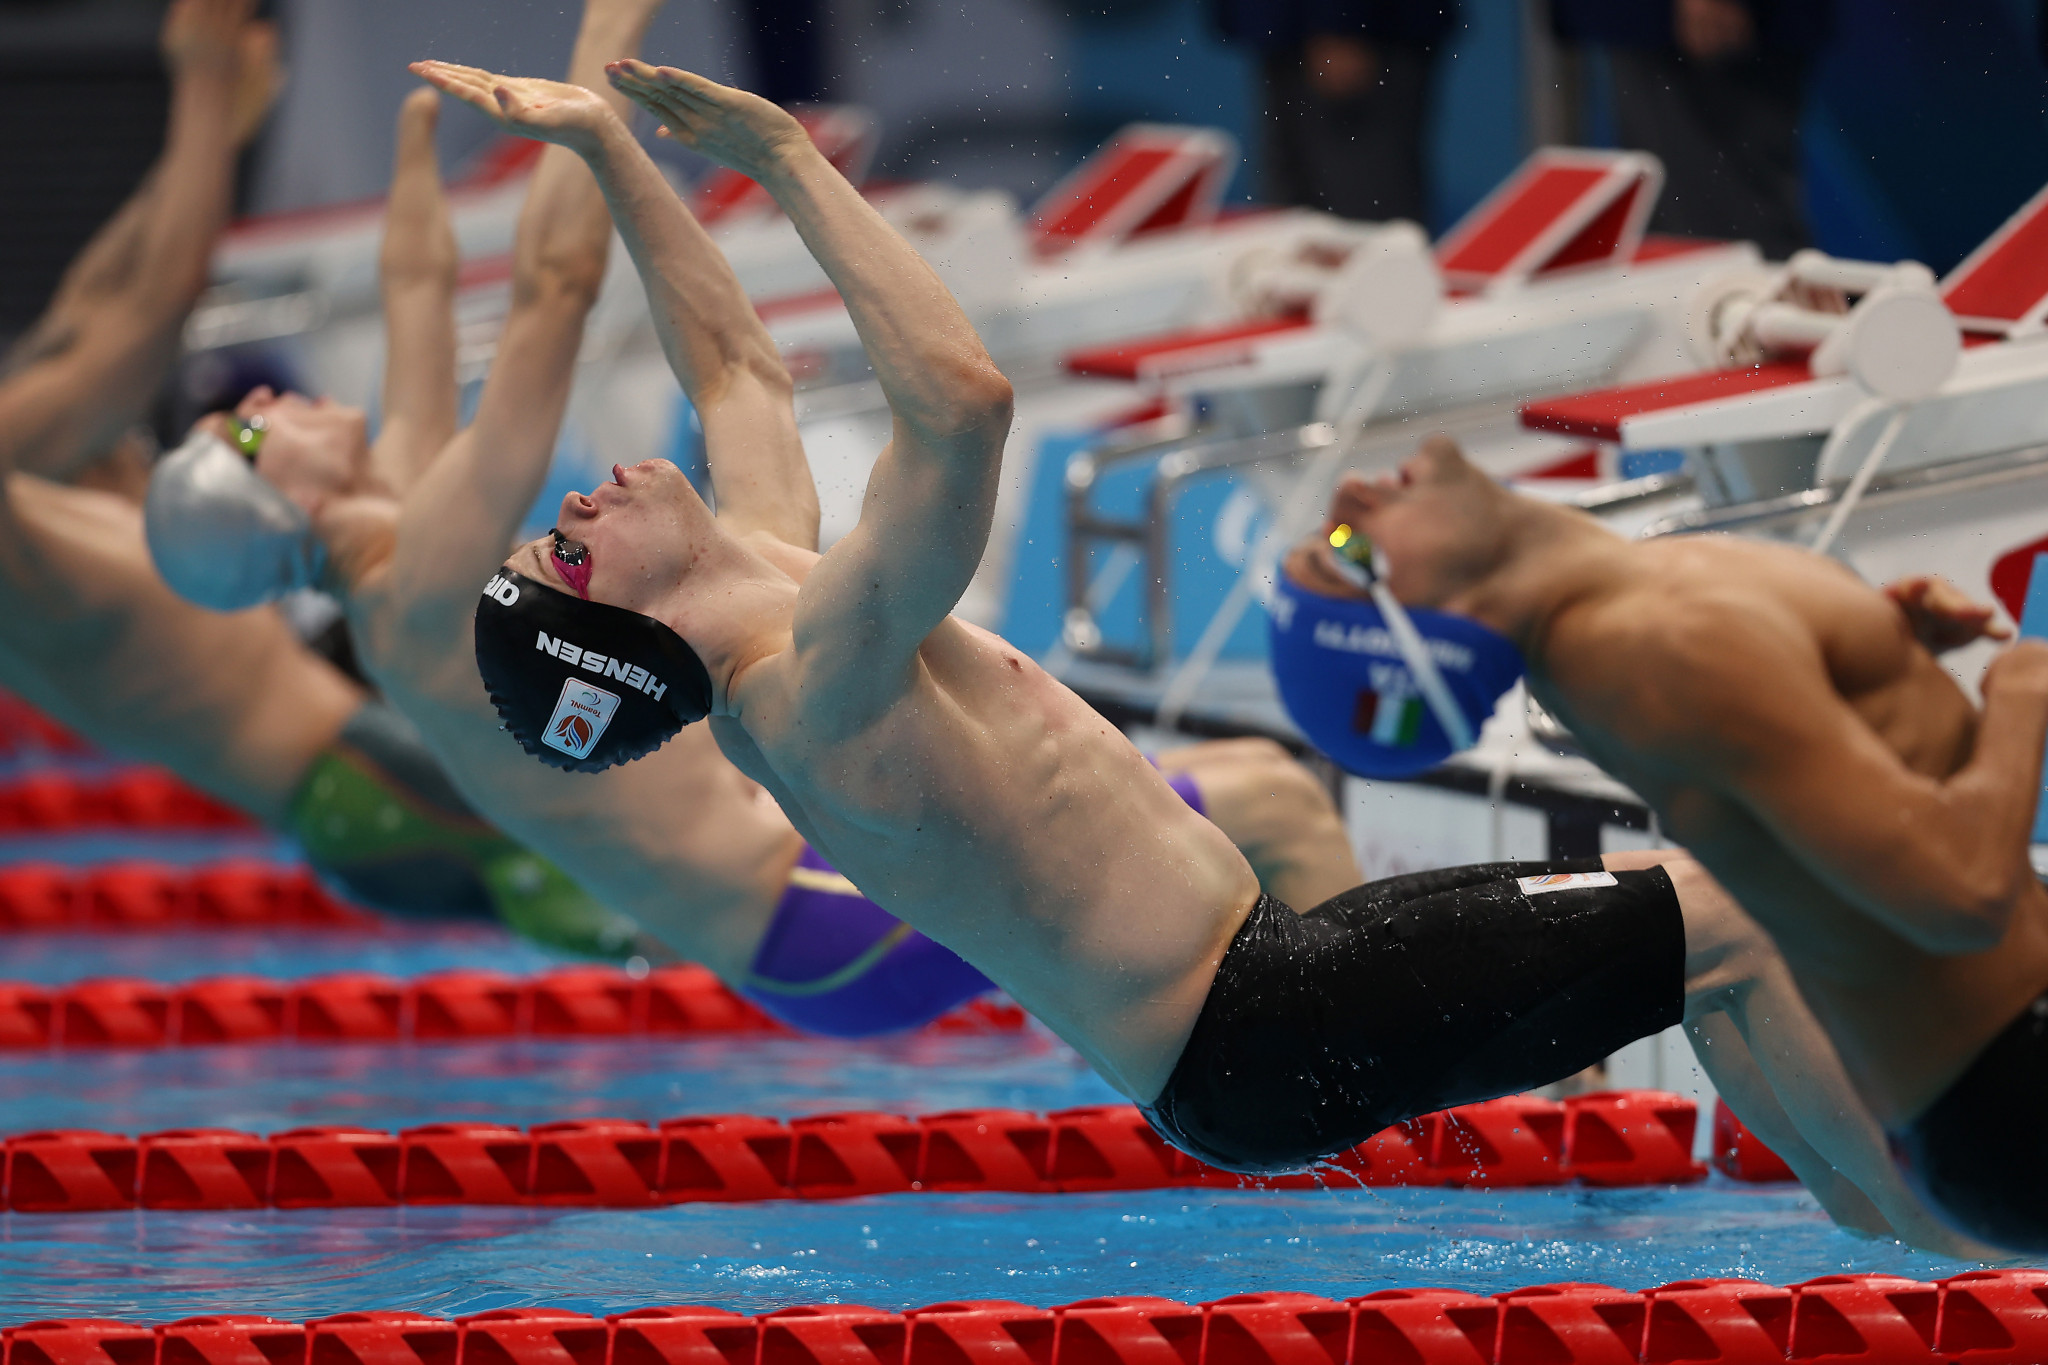 The final day of Tokyo 2020 swimming competition saw 16 gold medals on offer ©Getty Images